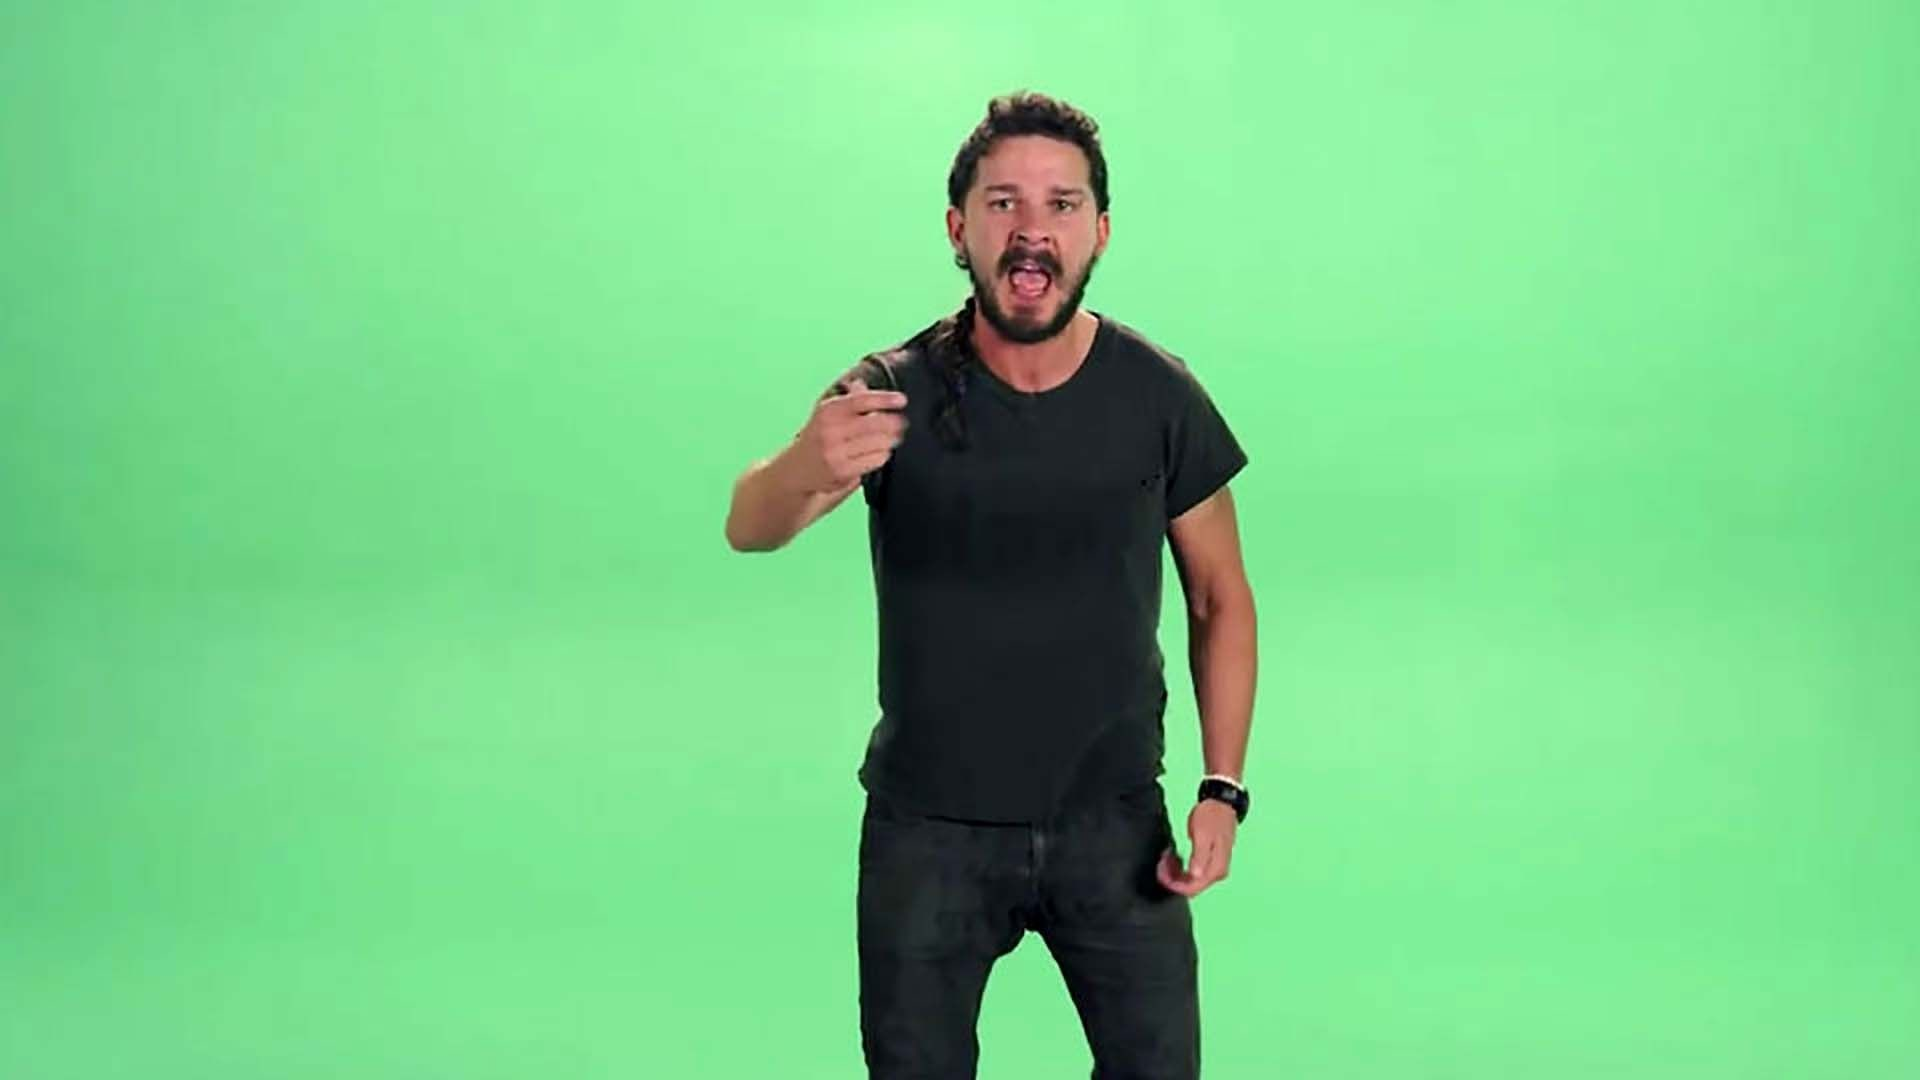 Shia LaBeouf's intense motivational speech has truly inspired the .